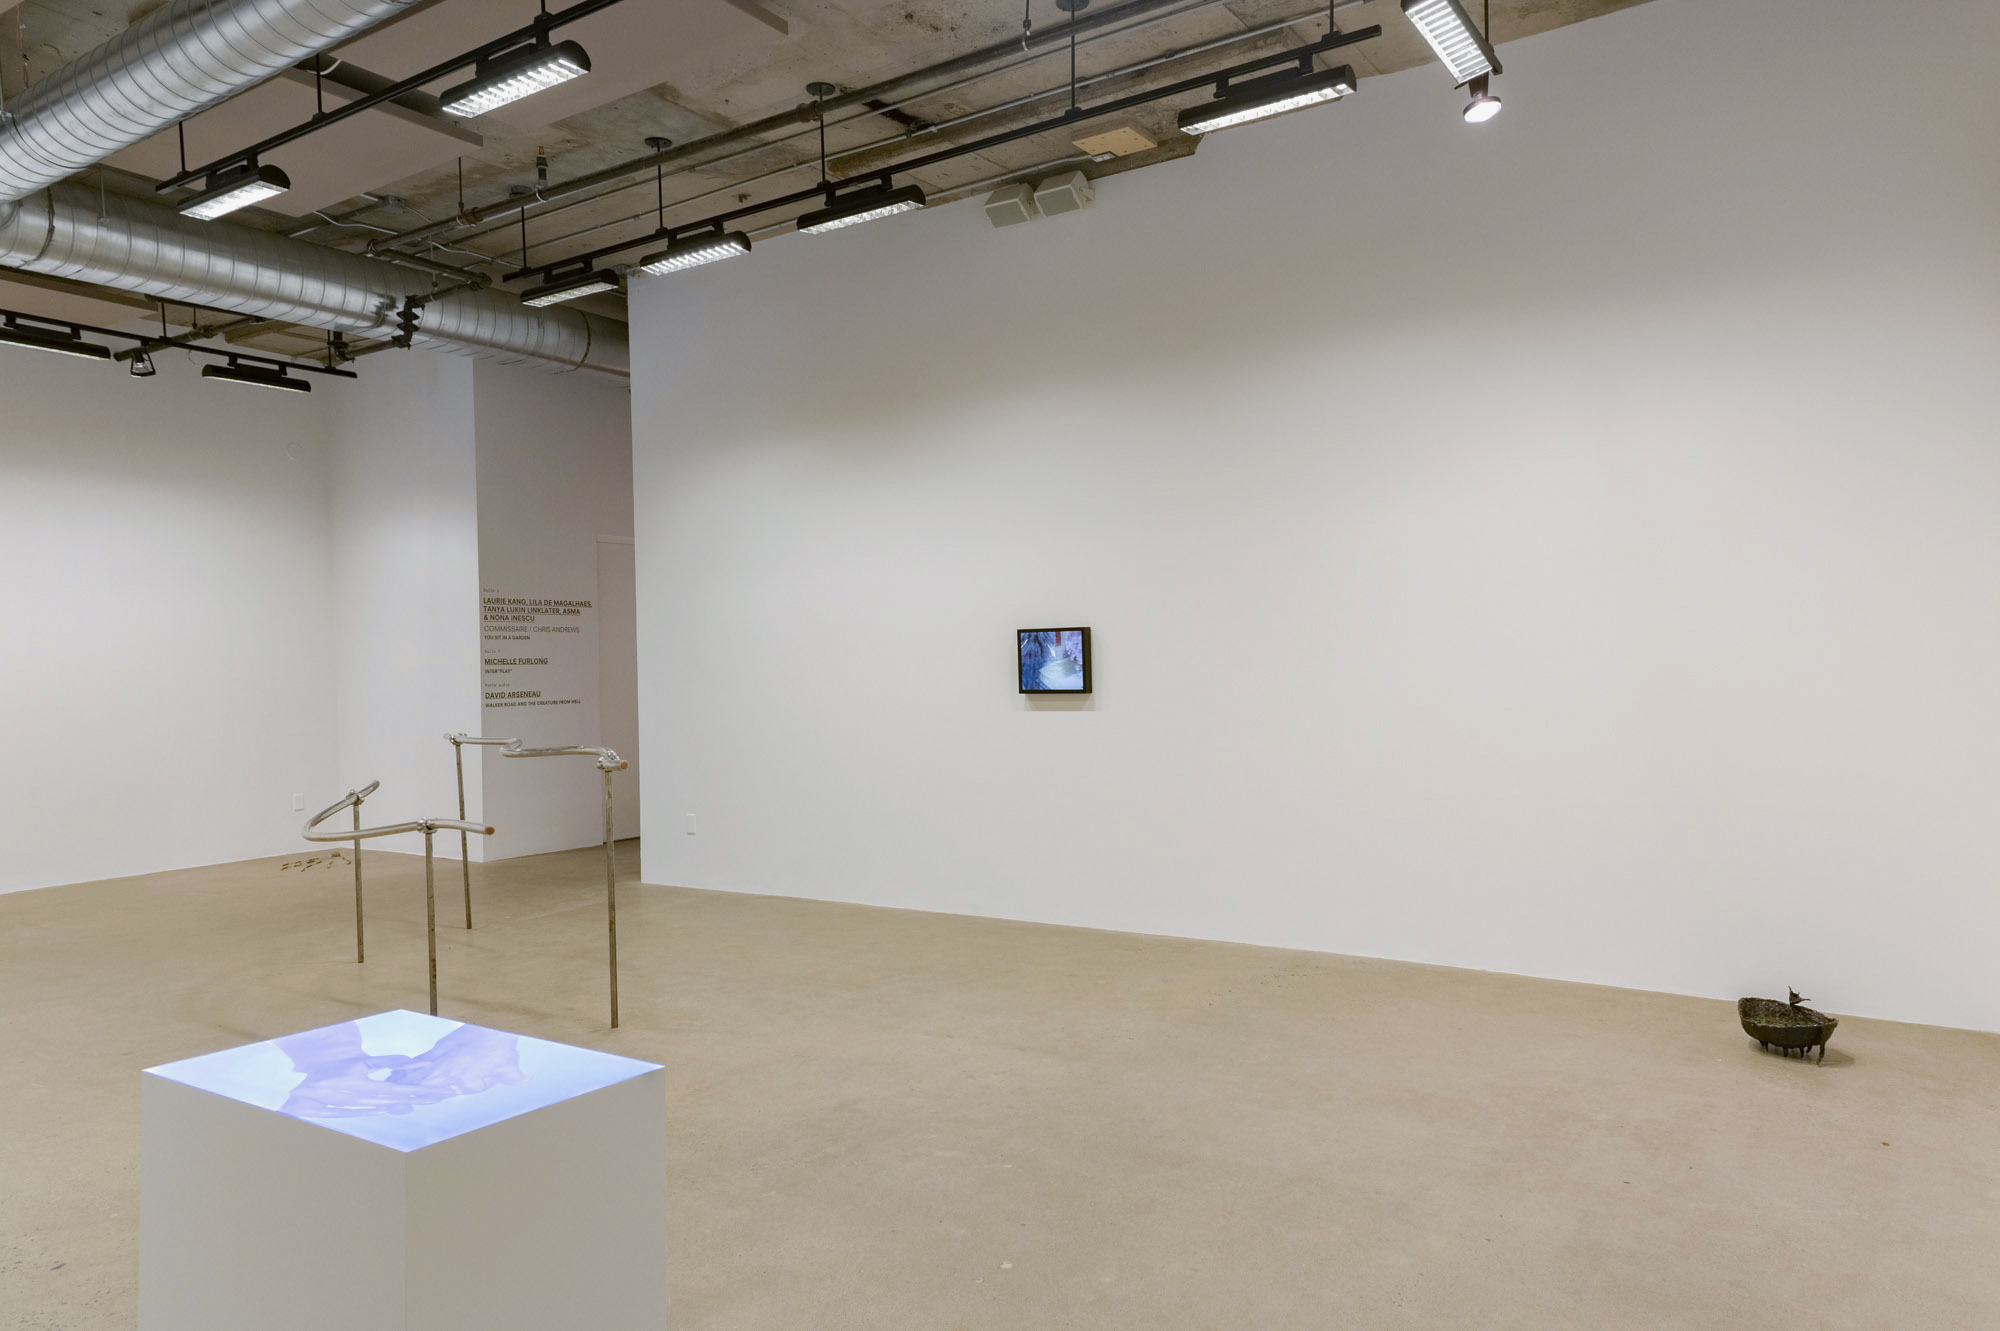 A gallery with concrete floors and high ceilings. Alt view of previous image, but we can now see a plinth with a projected video work featuring two hands in a blue light.